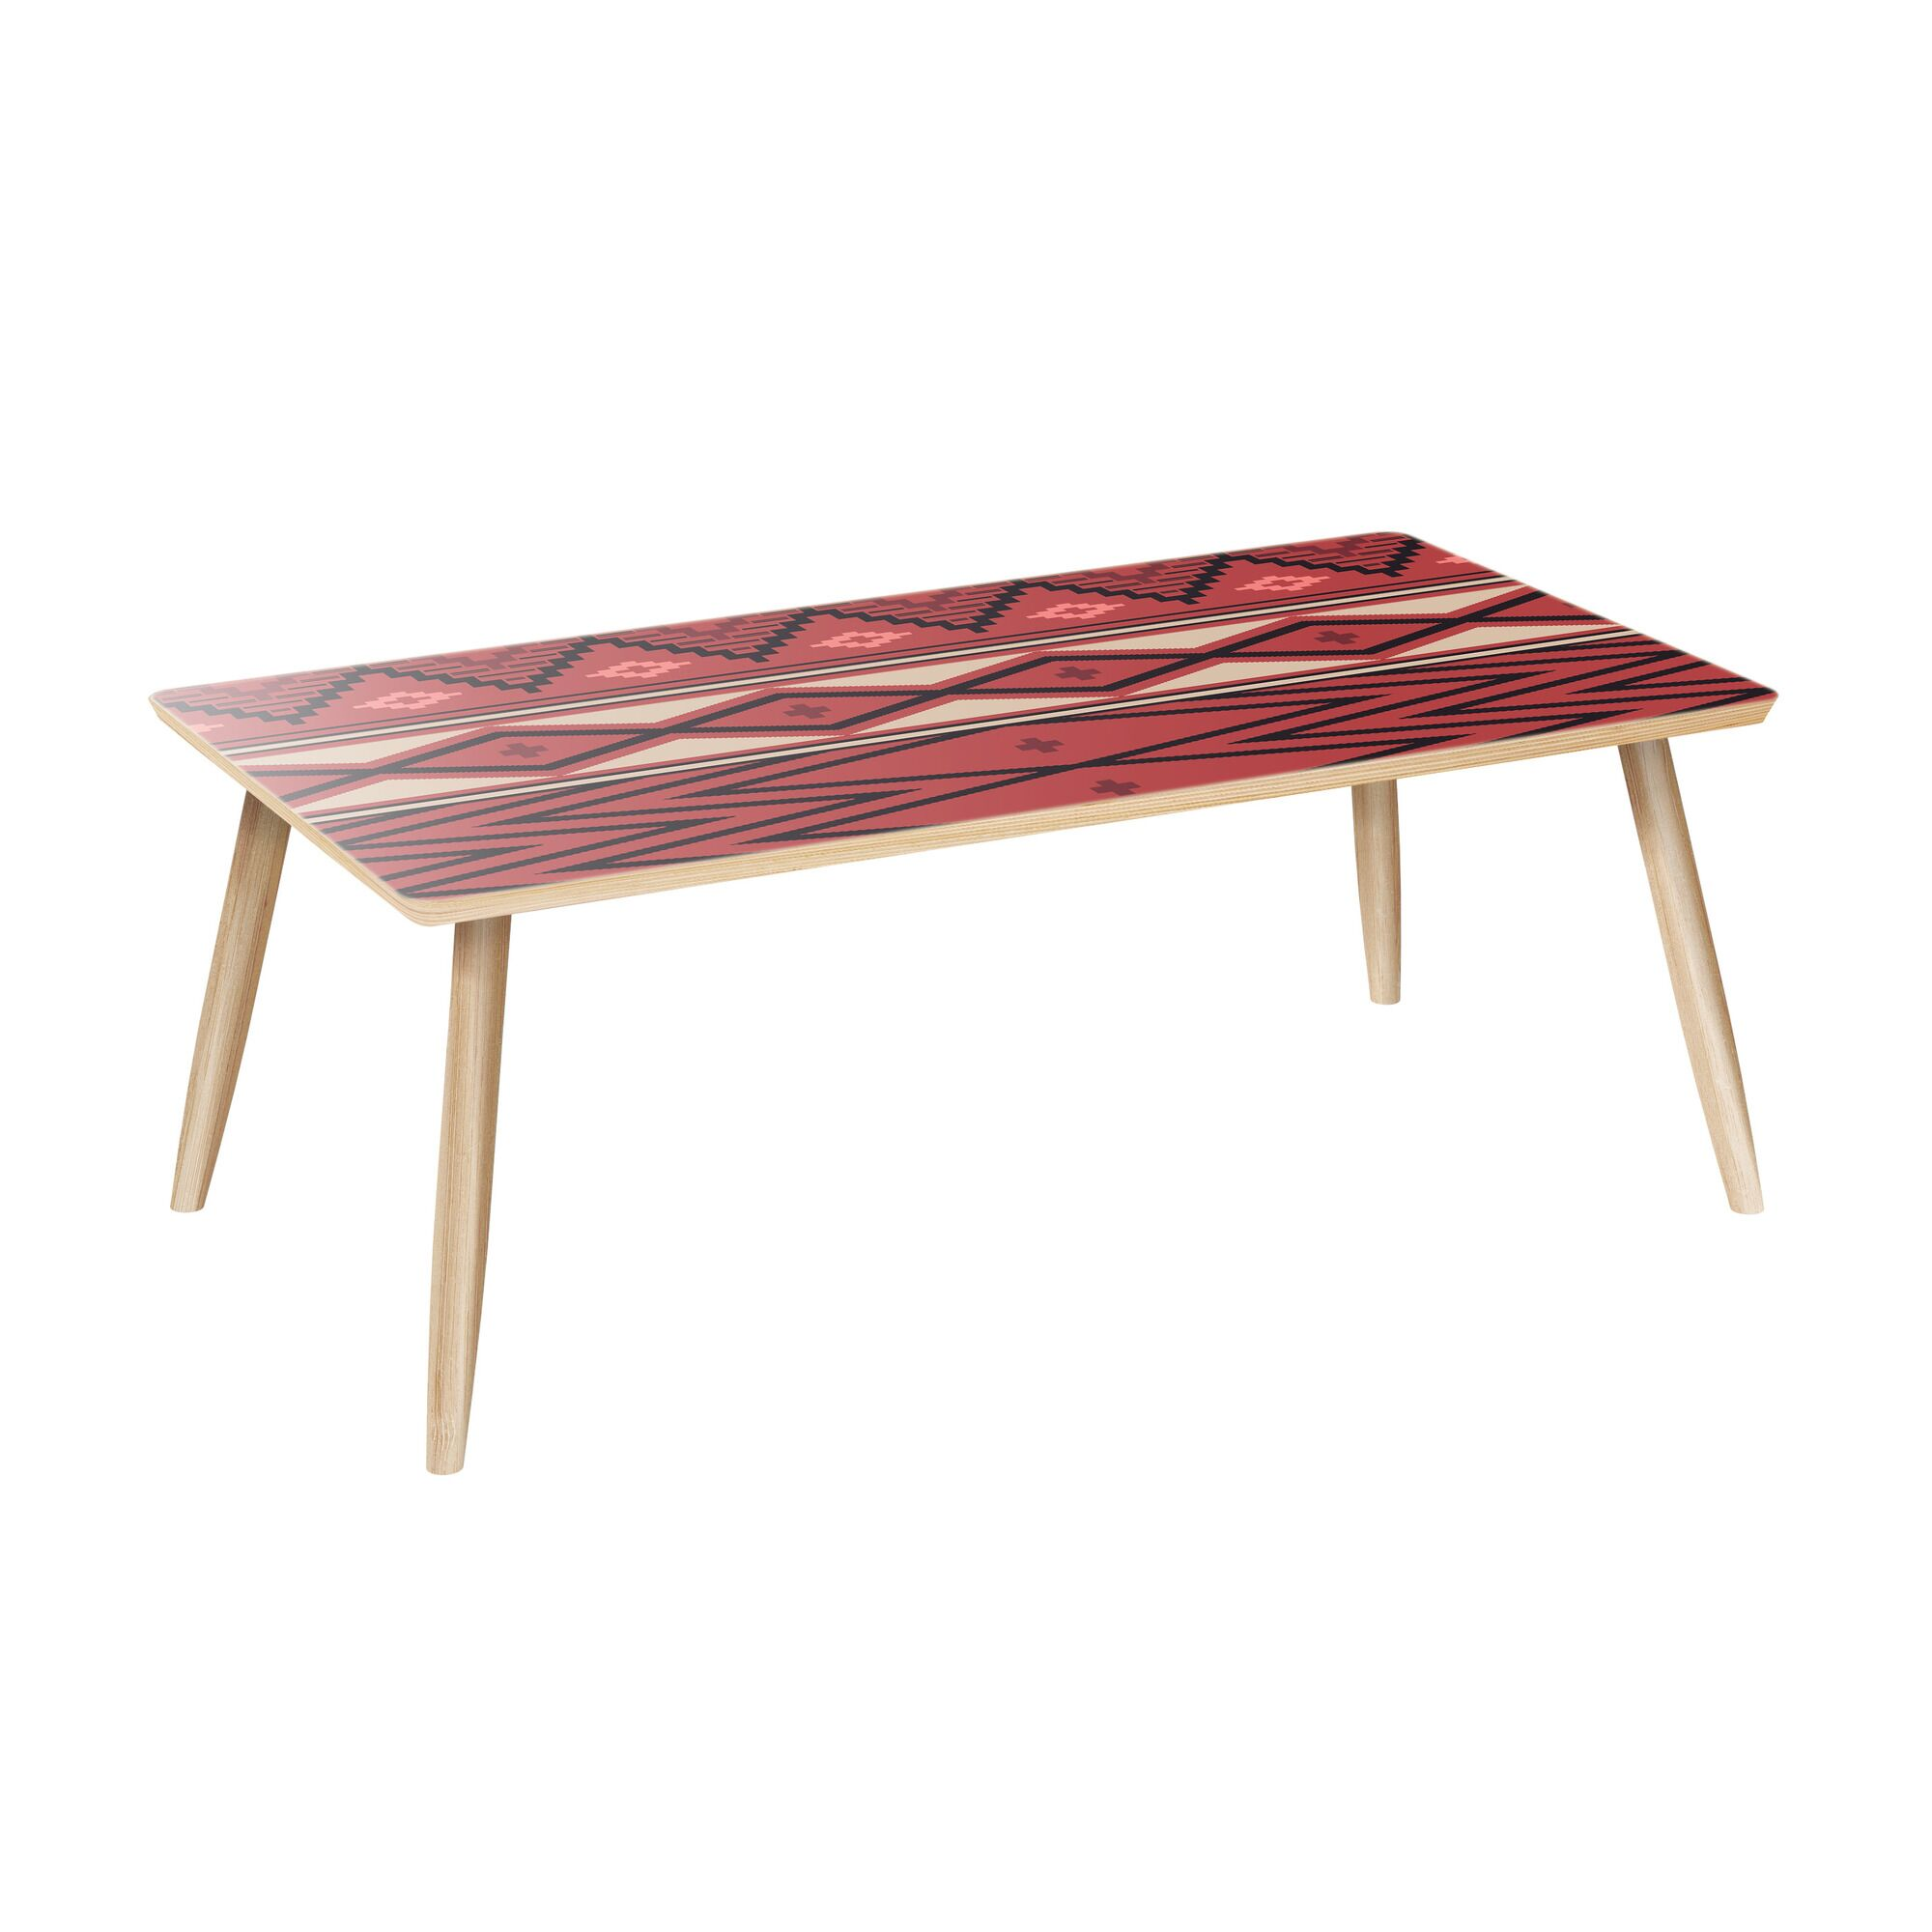 Tyndalls Park Coffee Table Table Base Color: Natural, Table Top Color: Red